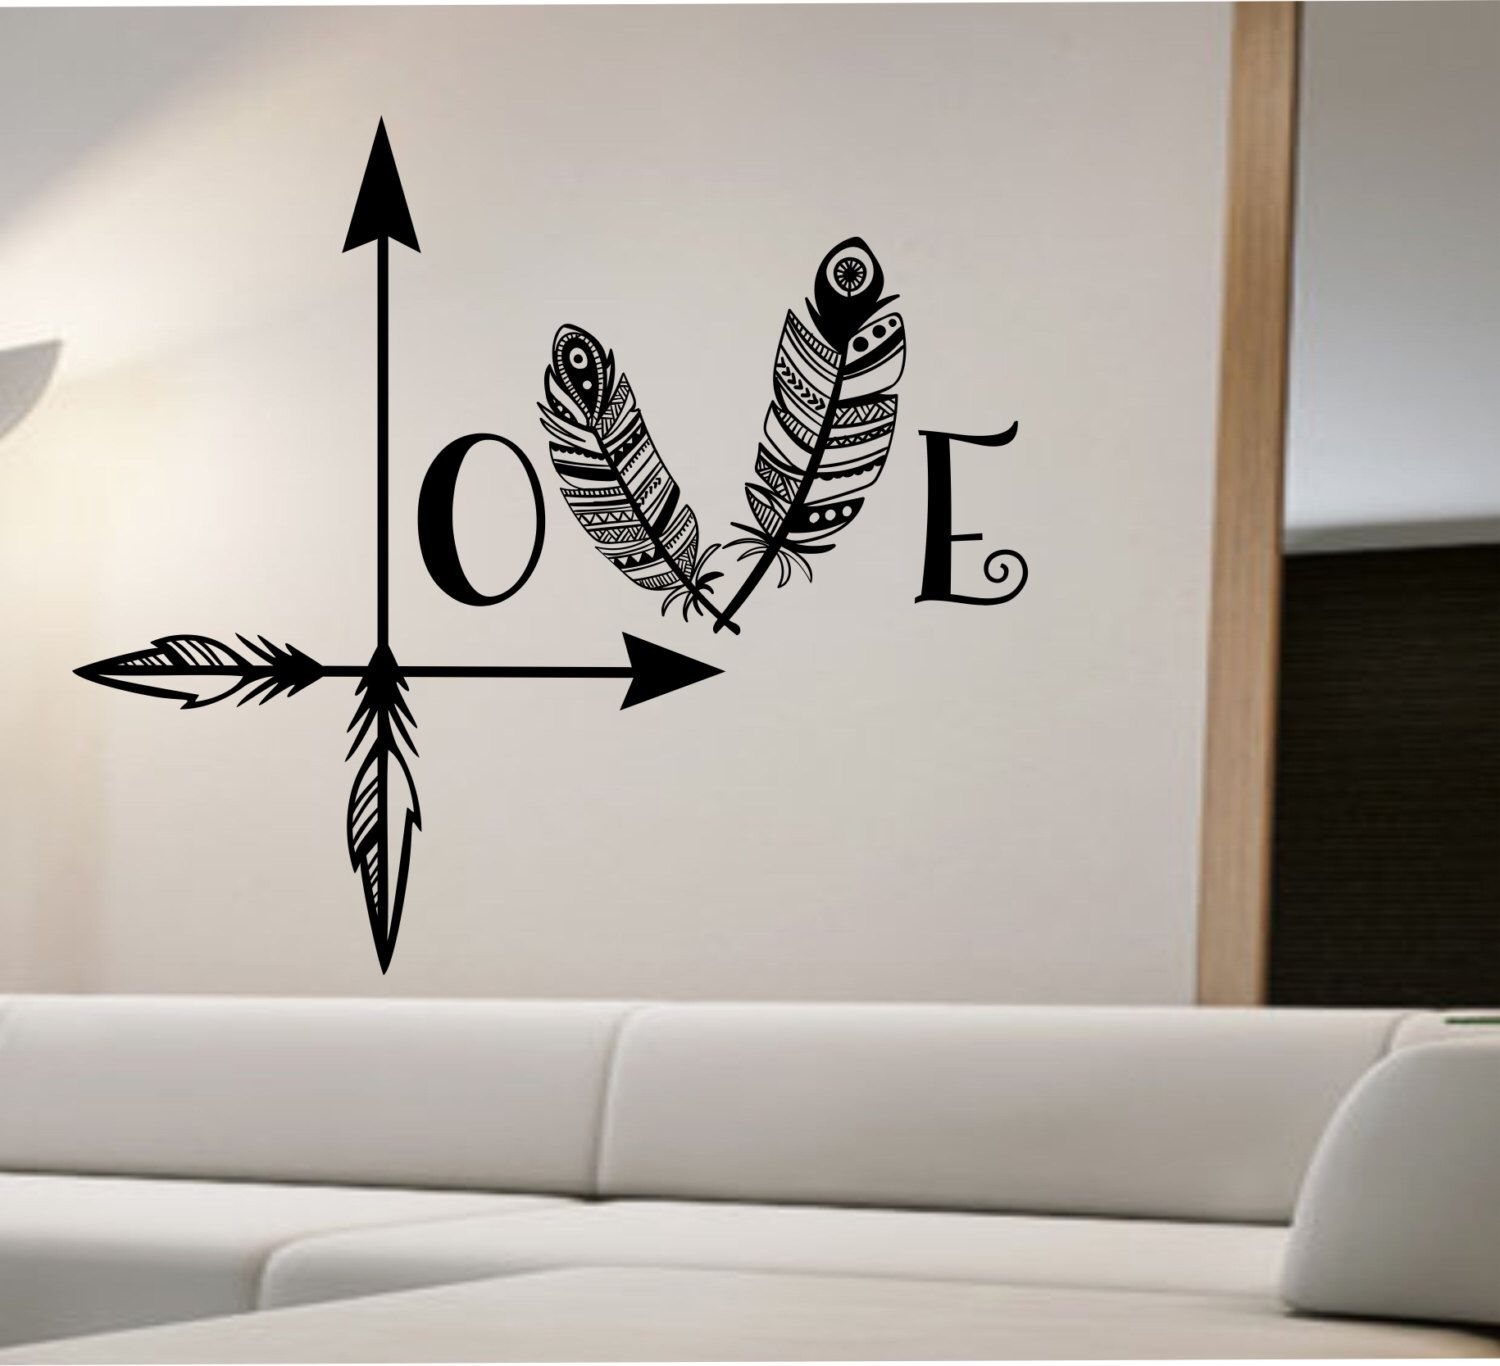 Love Arrow Wall Decal Feather Namaste Vinyl Sticker Art Decor inside Most Recent Wall Sticker Art